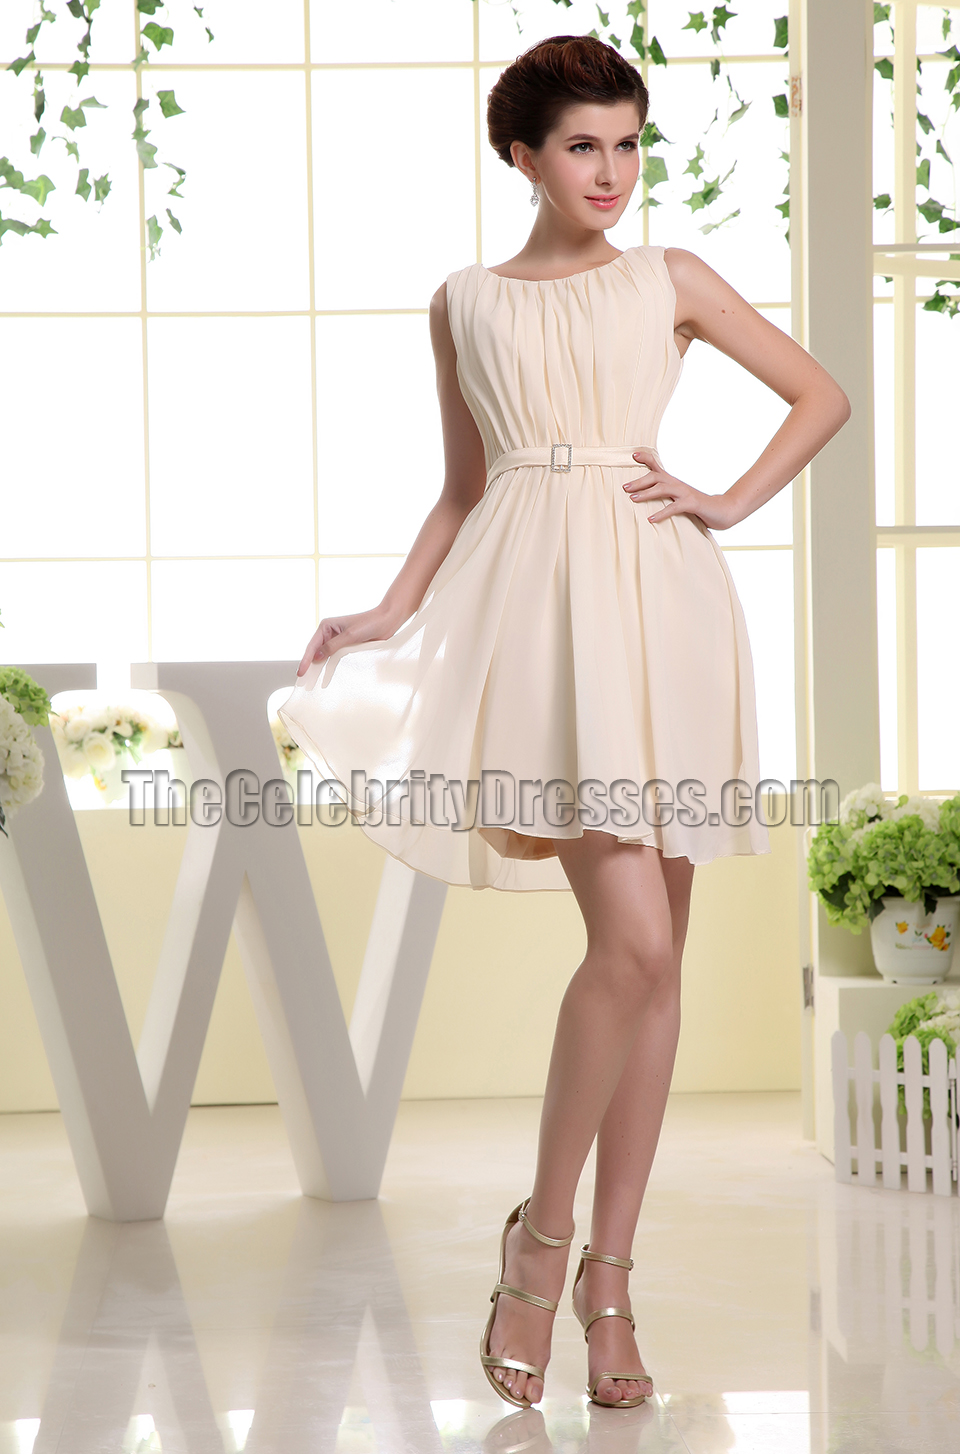 Sleeveless Short Chiffon Homecoming Dress Party Dresses